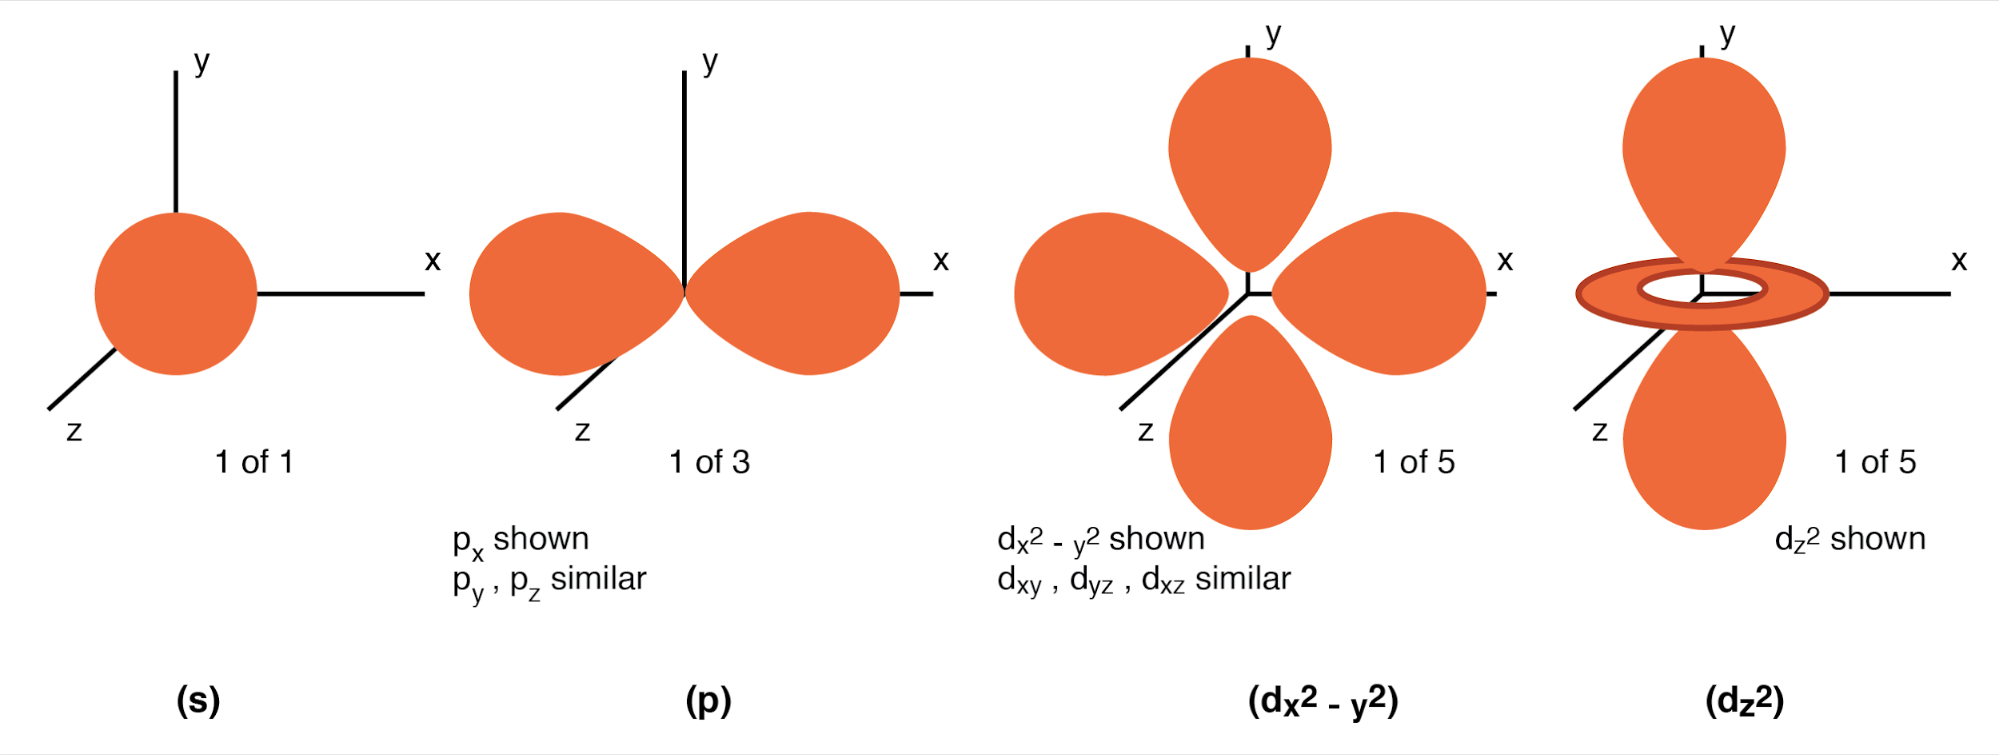 Orbitals: (s) Three fold symmetry. (p) Shown: px, one of three possible orientations (px, py, pz ), about their respective axes. (d) Shown: dx2-y2 similar to dxy, dyz, dxz. Shown: dz2. Possible d-orbital orientations: five.